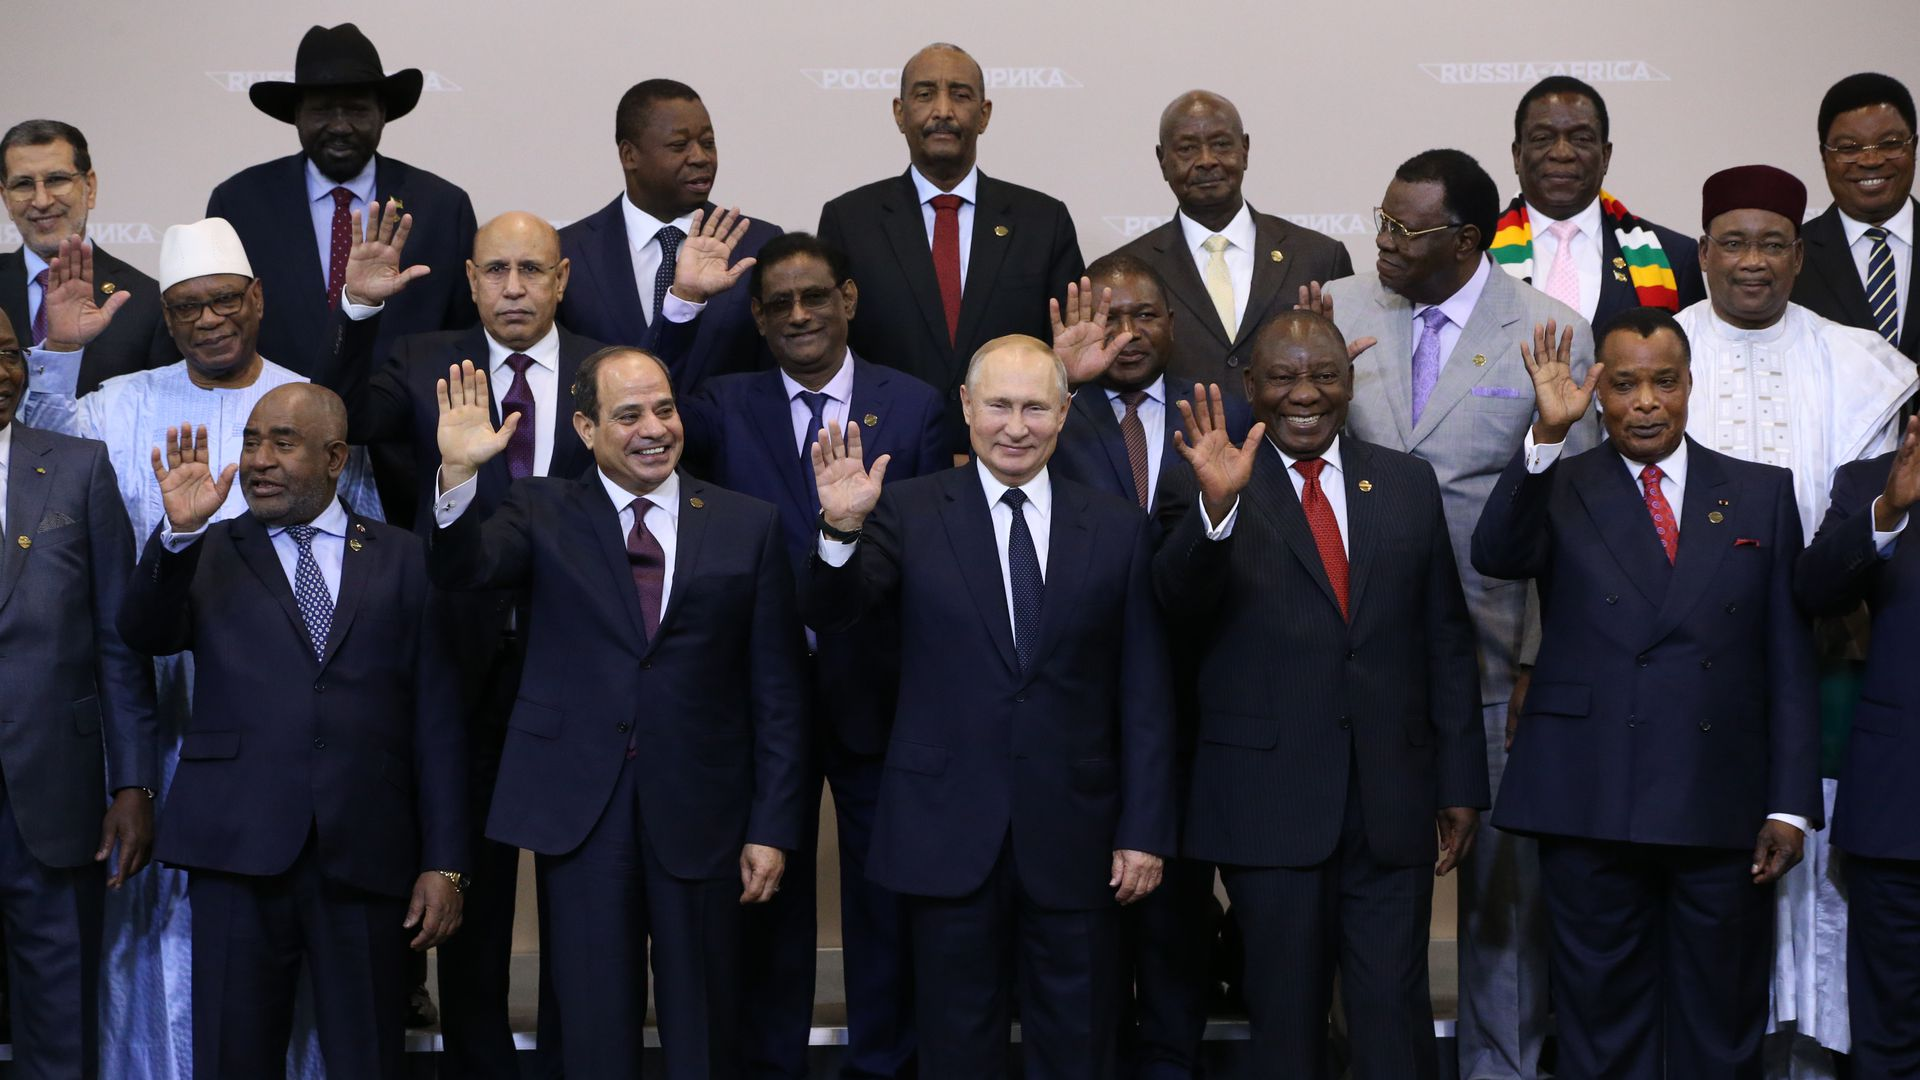 Putin and African leaders gathered and waving